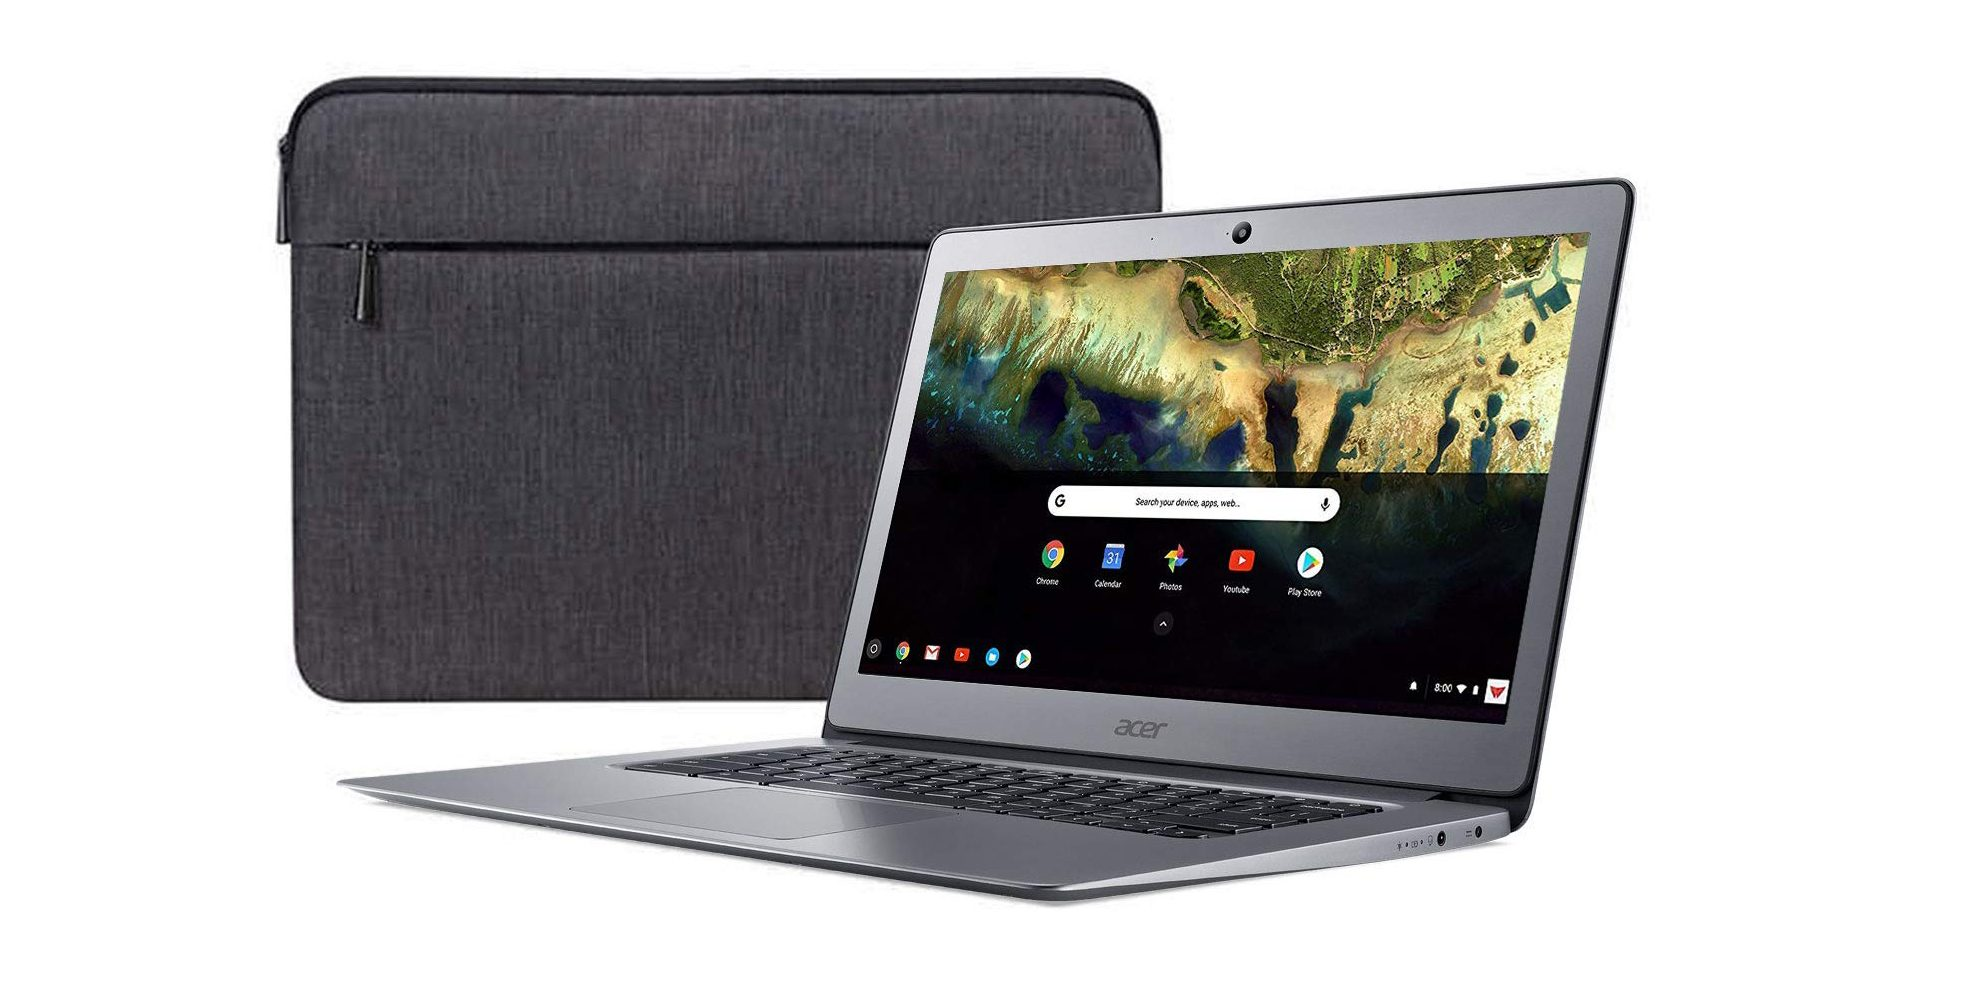 9to5Toys Mittagspause: Acer Chromebook 14 239 $, Google Home Hub 87 $, TP-Link Smart Lighting 30 $, mehr